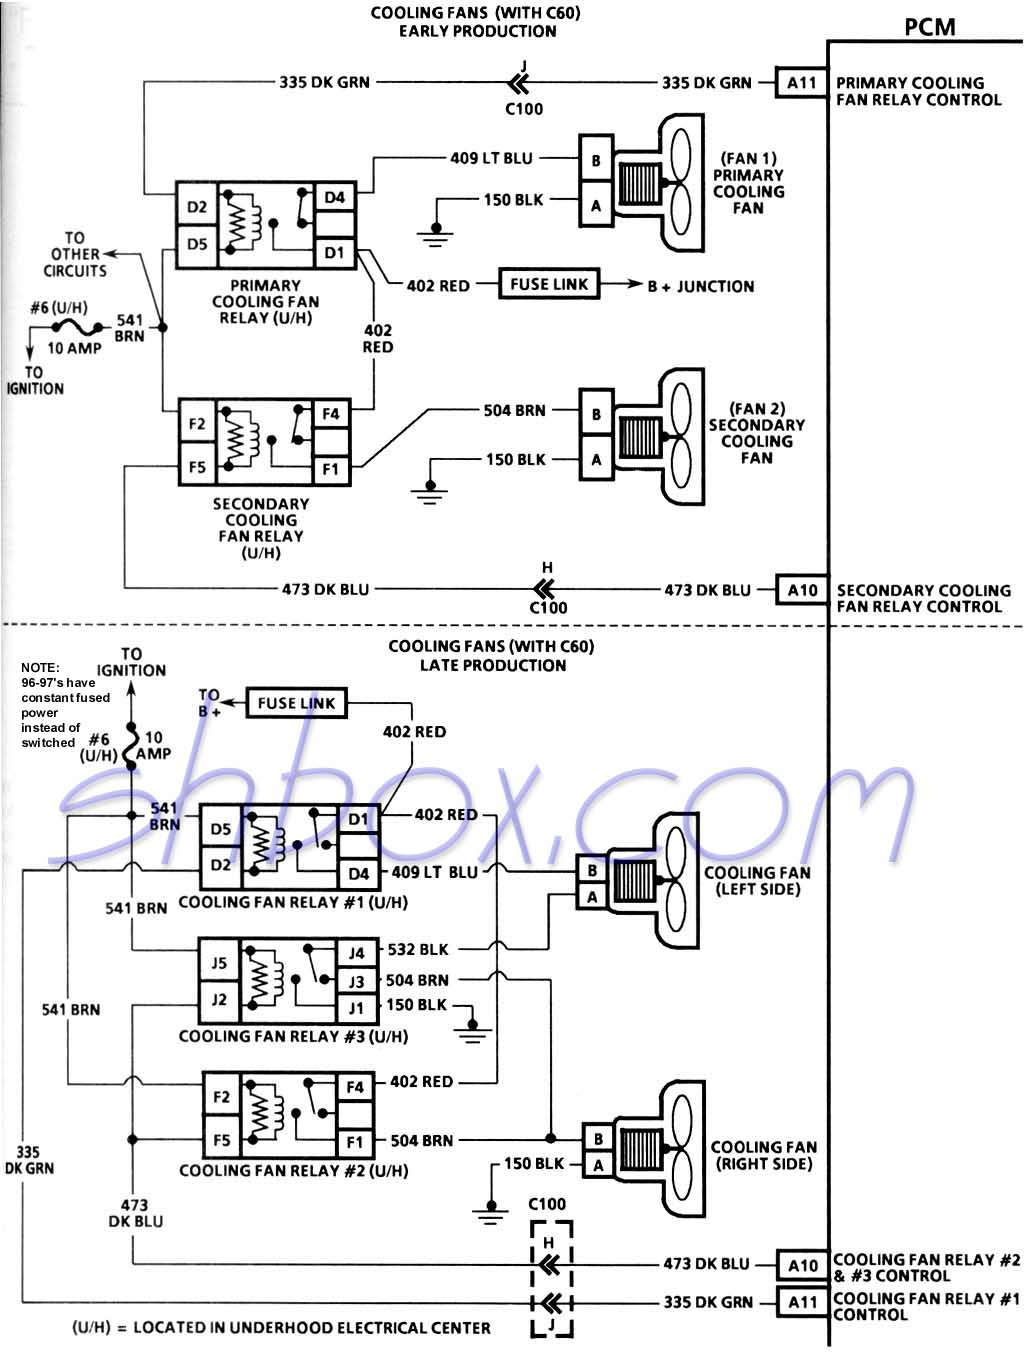 Gmc 2009 Acadia Cylinder Diagram besides T17619755 2007 chevy impala body control module furthermore 99 Cabrio Fuel Pump Relay Location as well Gm 2 4l Engine Specifications as well Tech Posts. on chevy truck 2014 4 3 v6